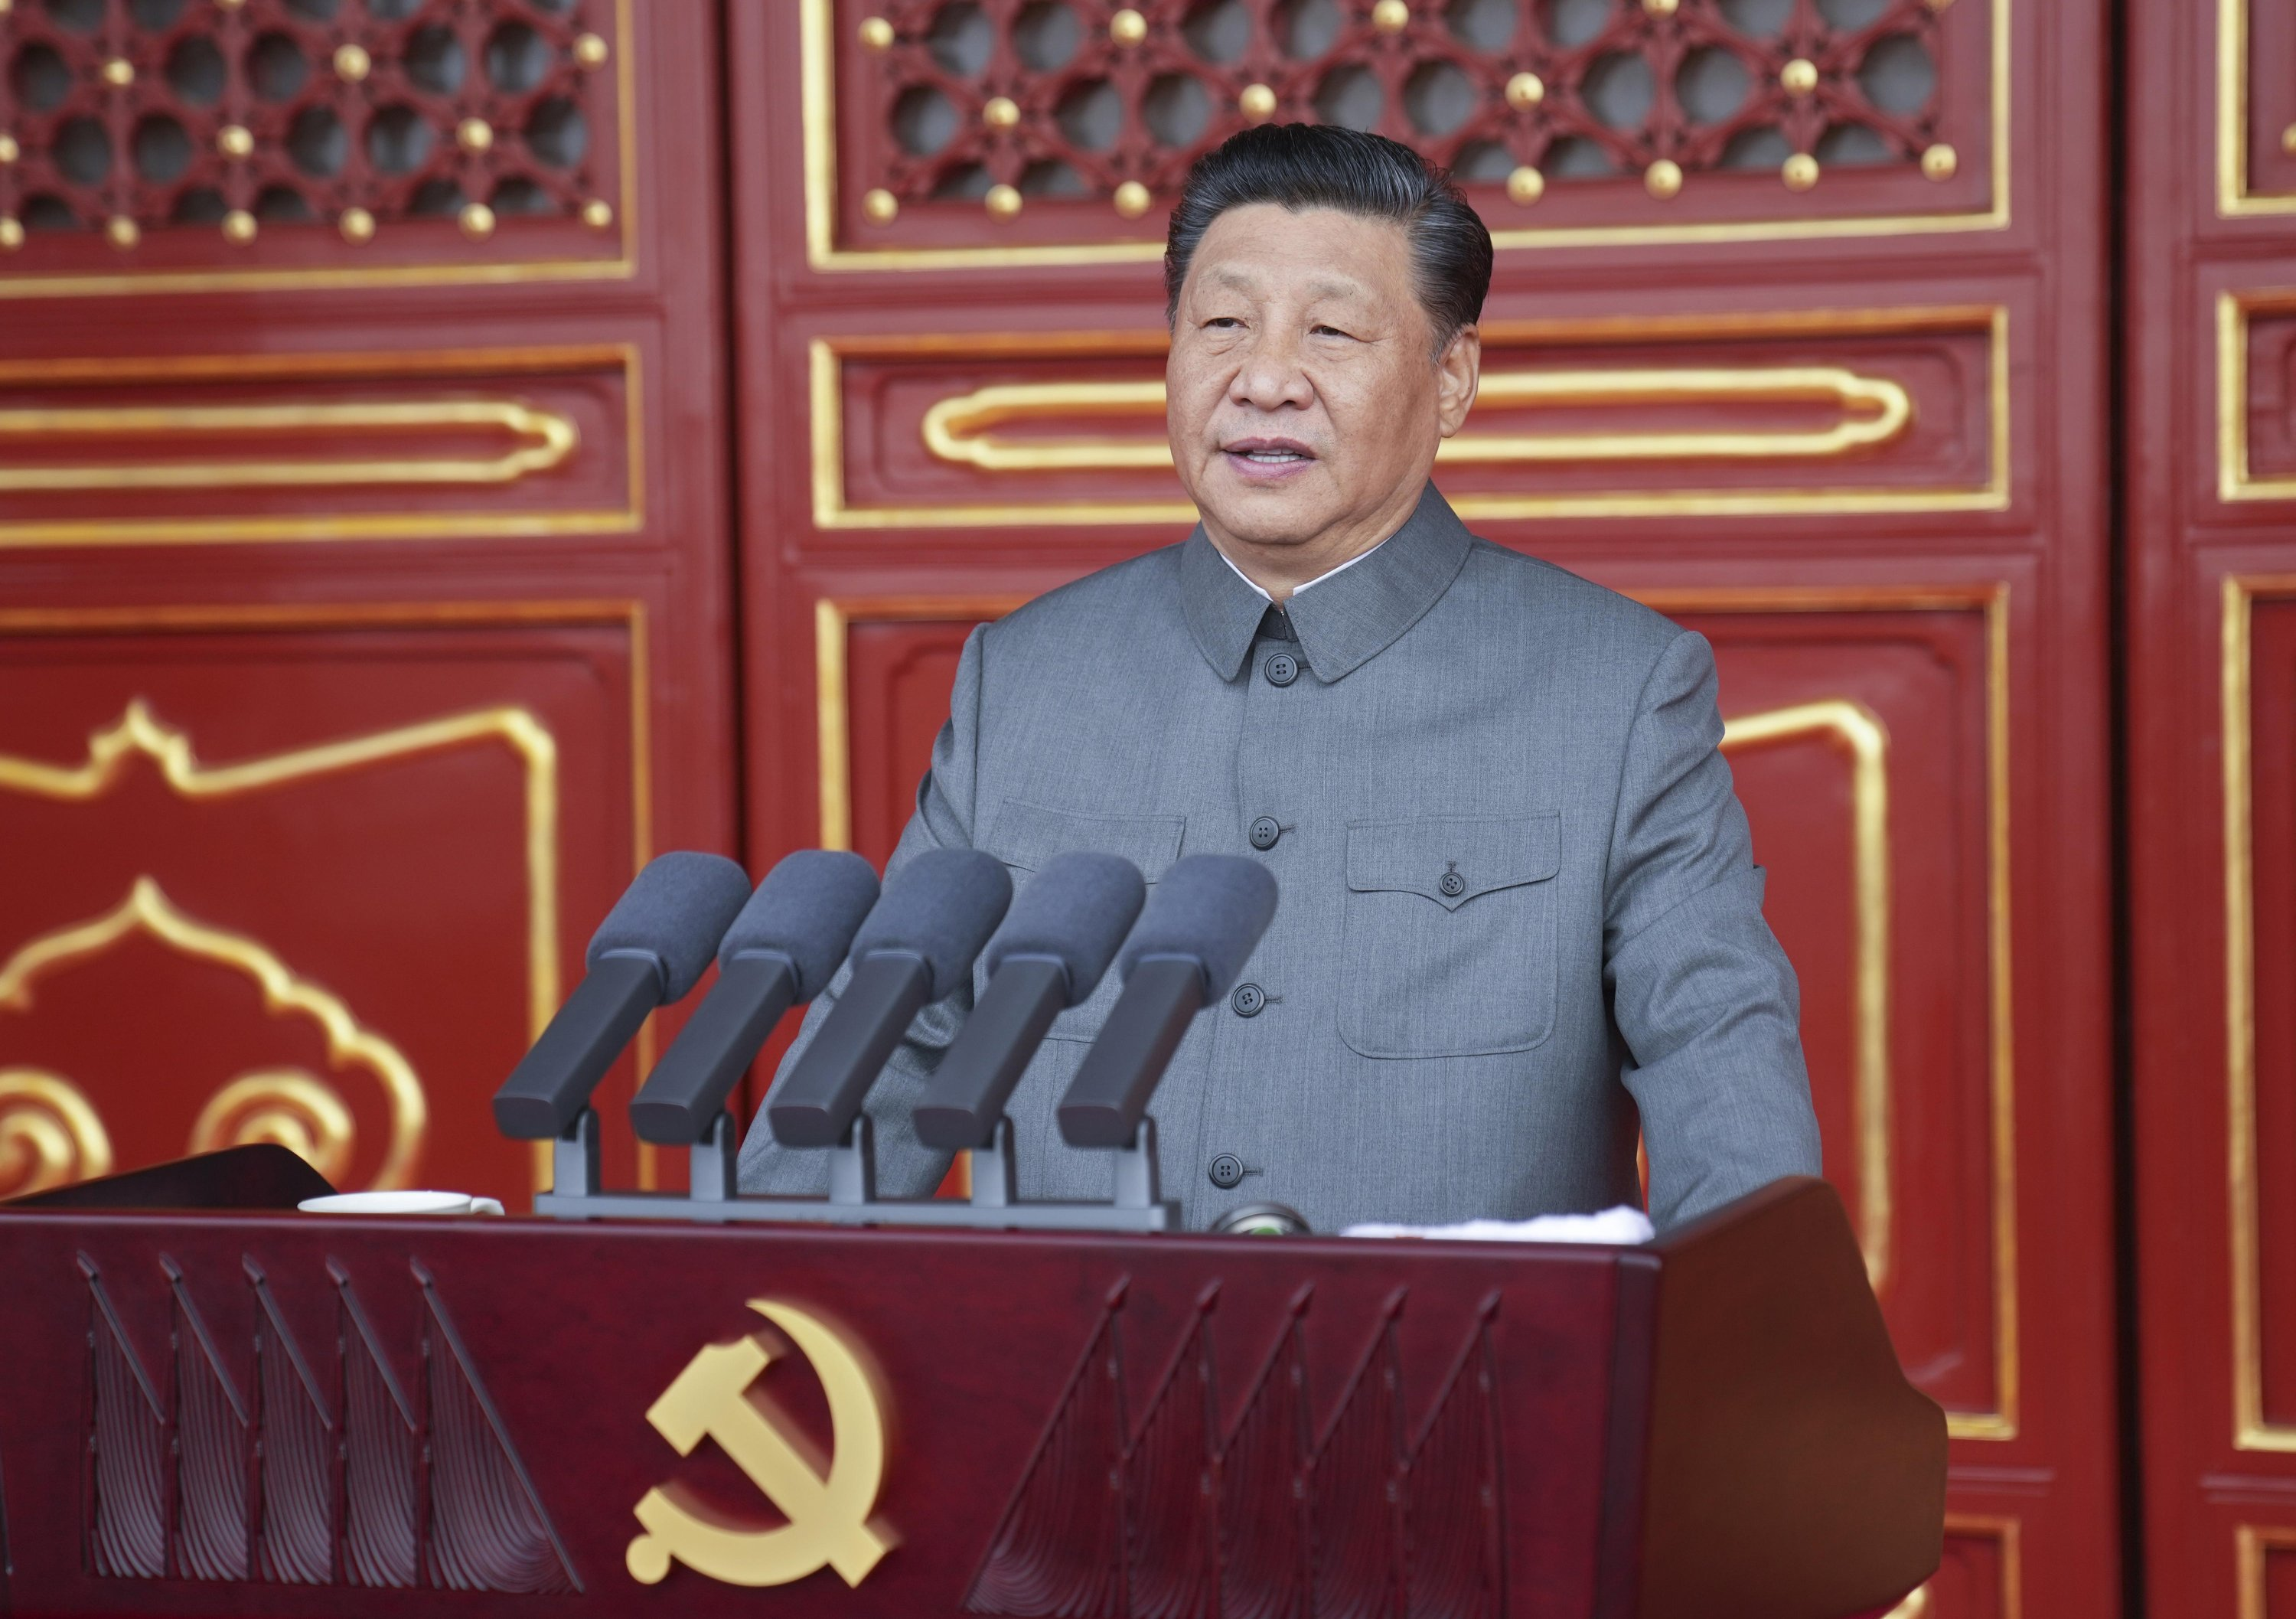 In this photo provided by China's Xinhua News Agency, Chinese President and party leader Xi Jinping delivers a speech at a ceremony marking the centenary of the ruling Communist Party in Beijing, China, July 1, 2021. (Xinhua via AP)